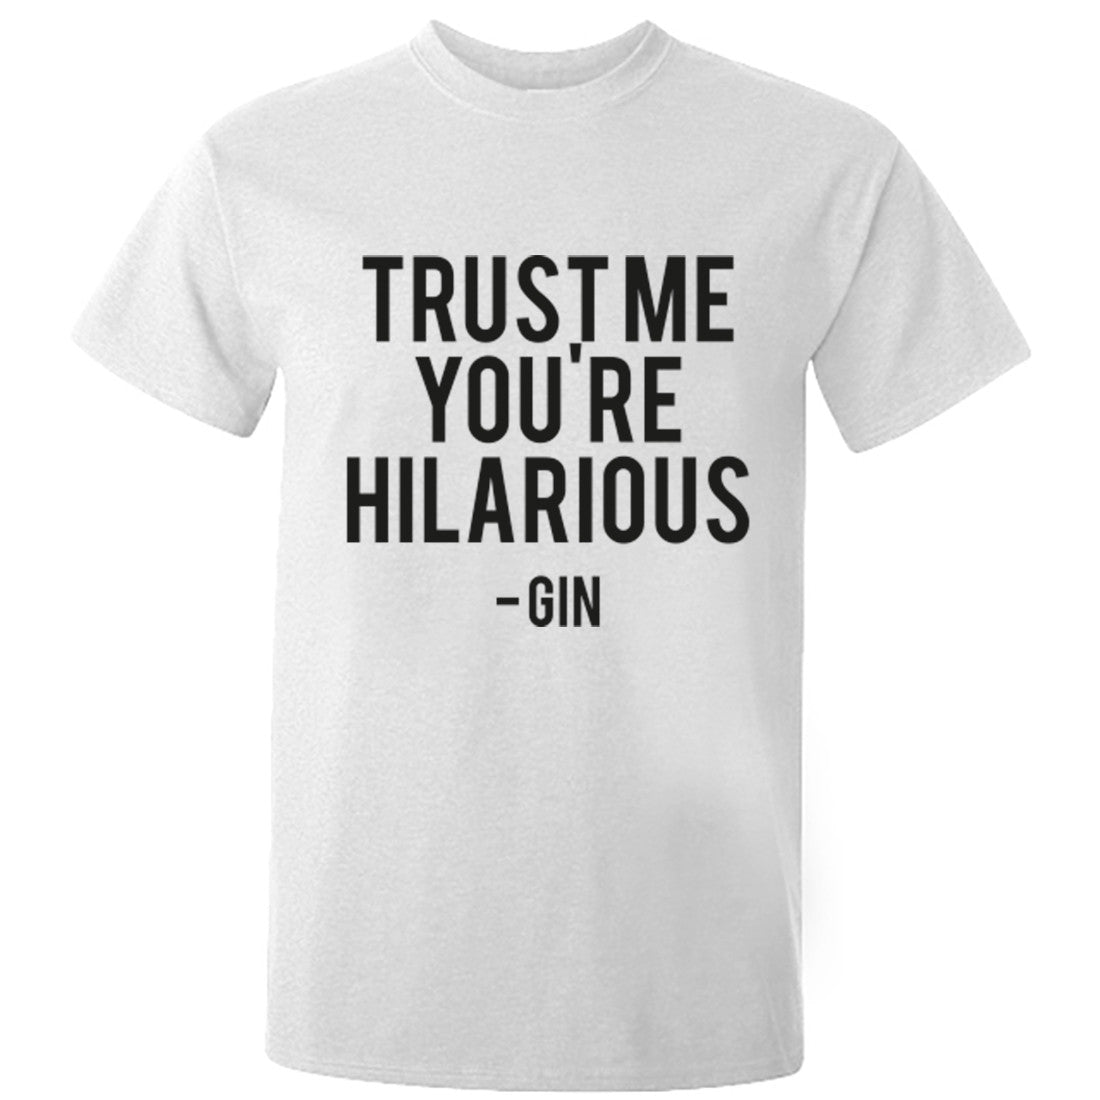 Trust Me You're Hilarious - Gin Unisex Fit T-Shirt K0610